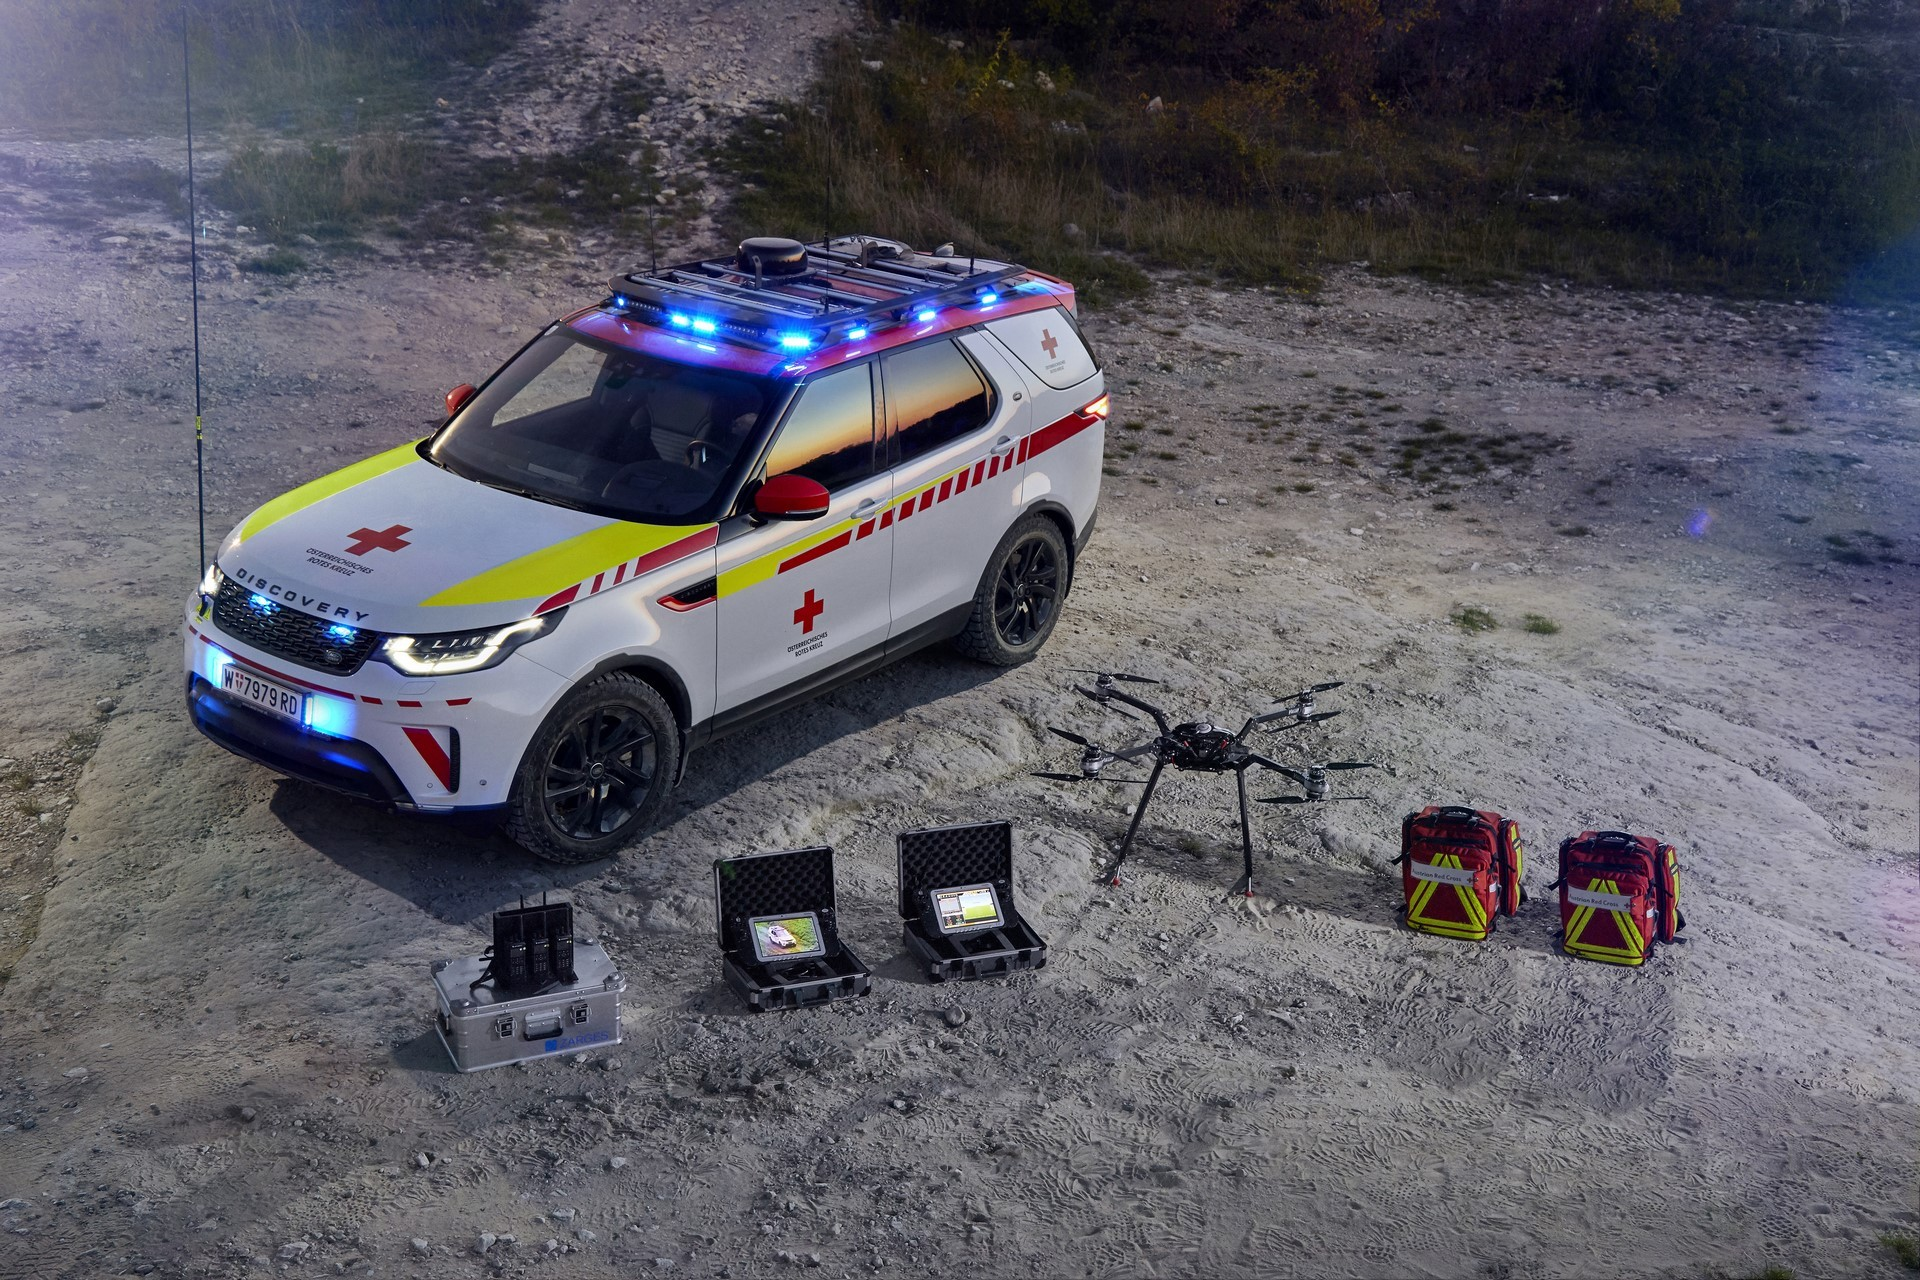 Land Rover Discovery Emergency Vehicle (21)